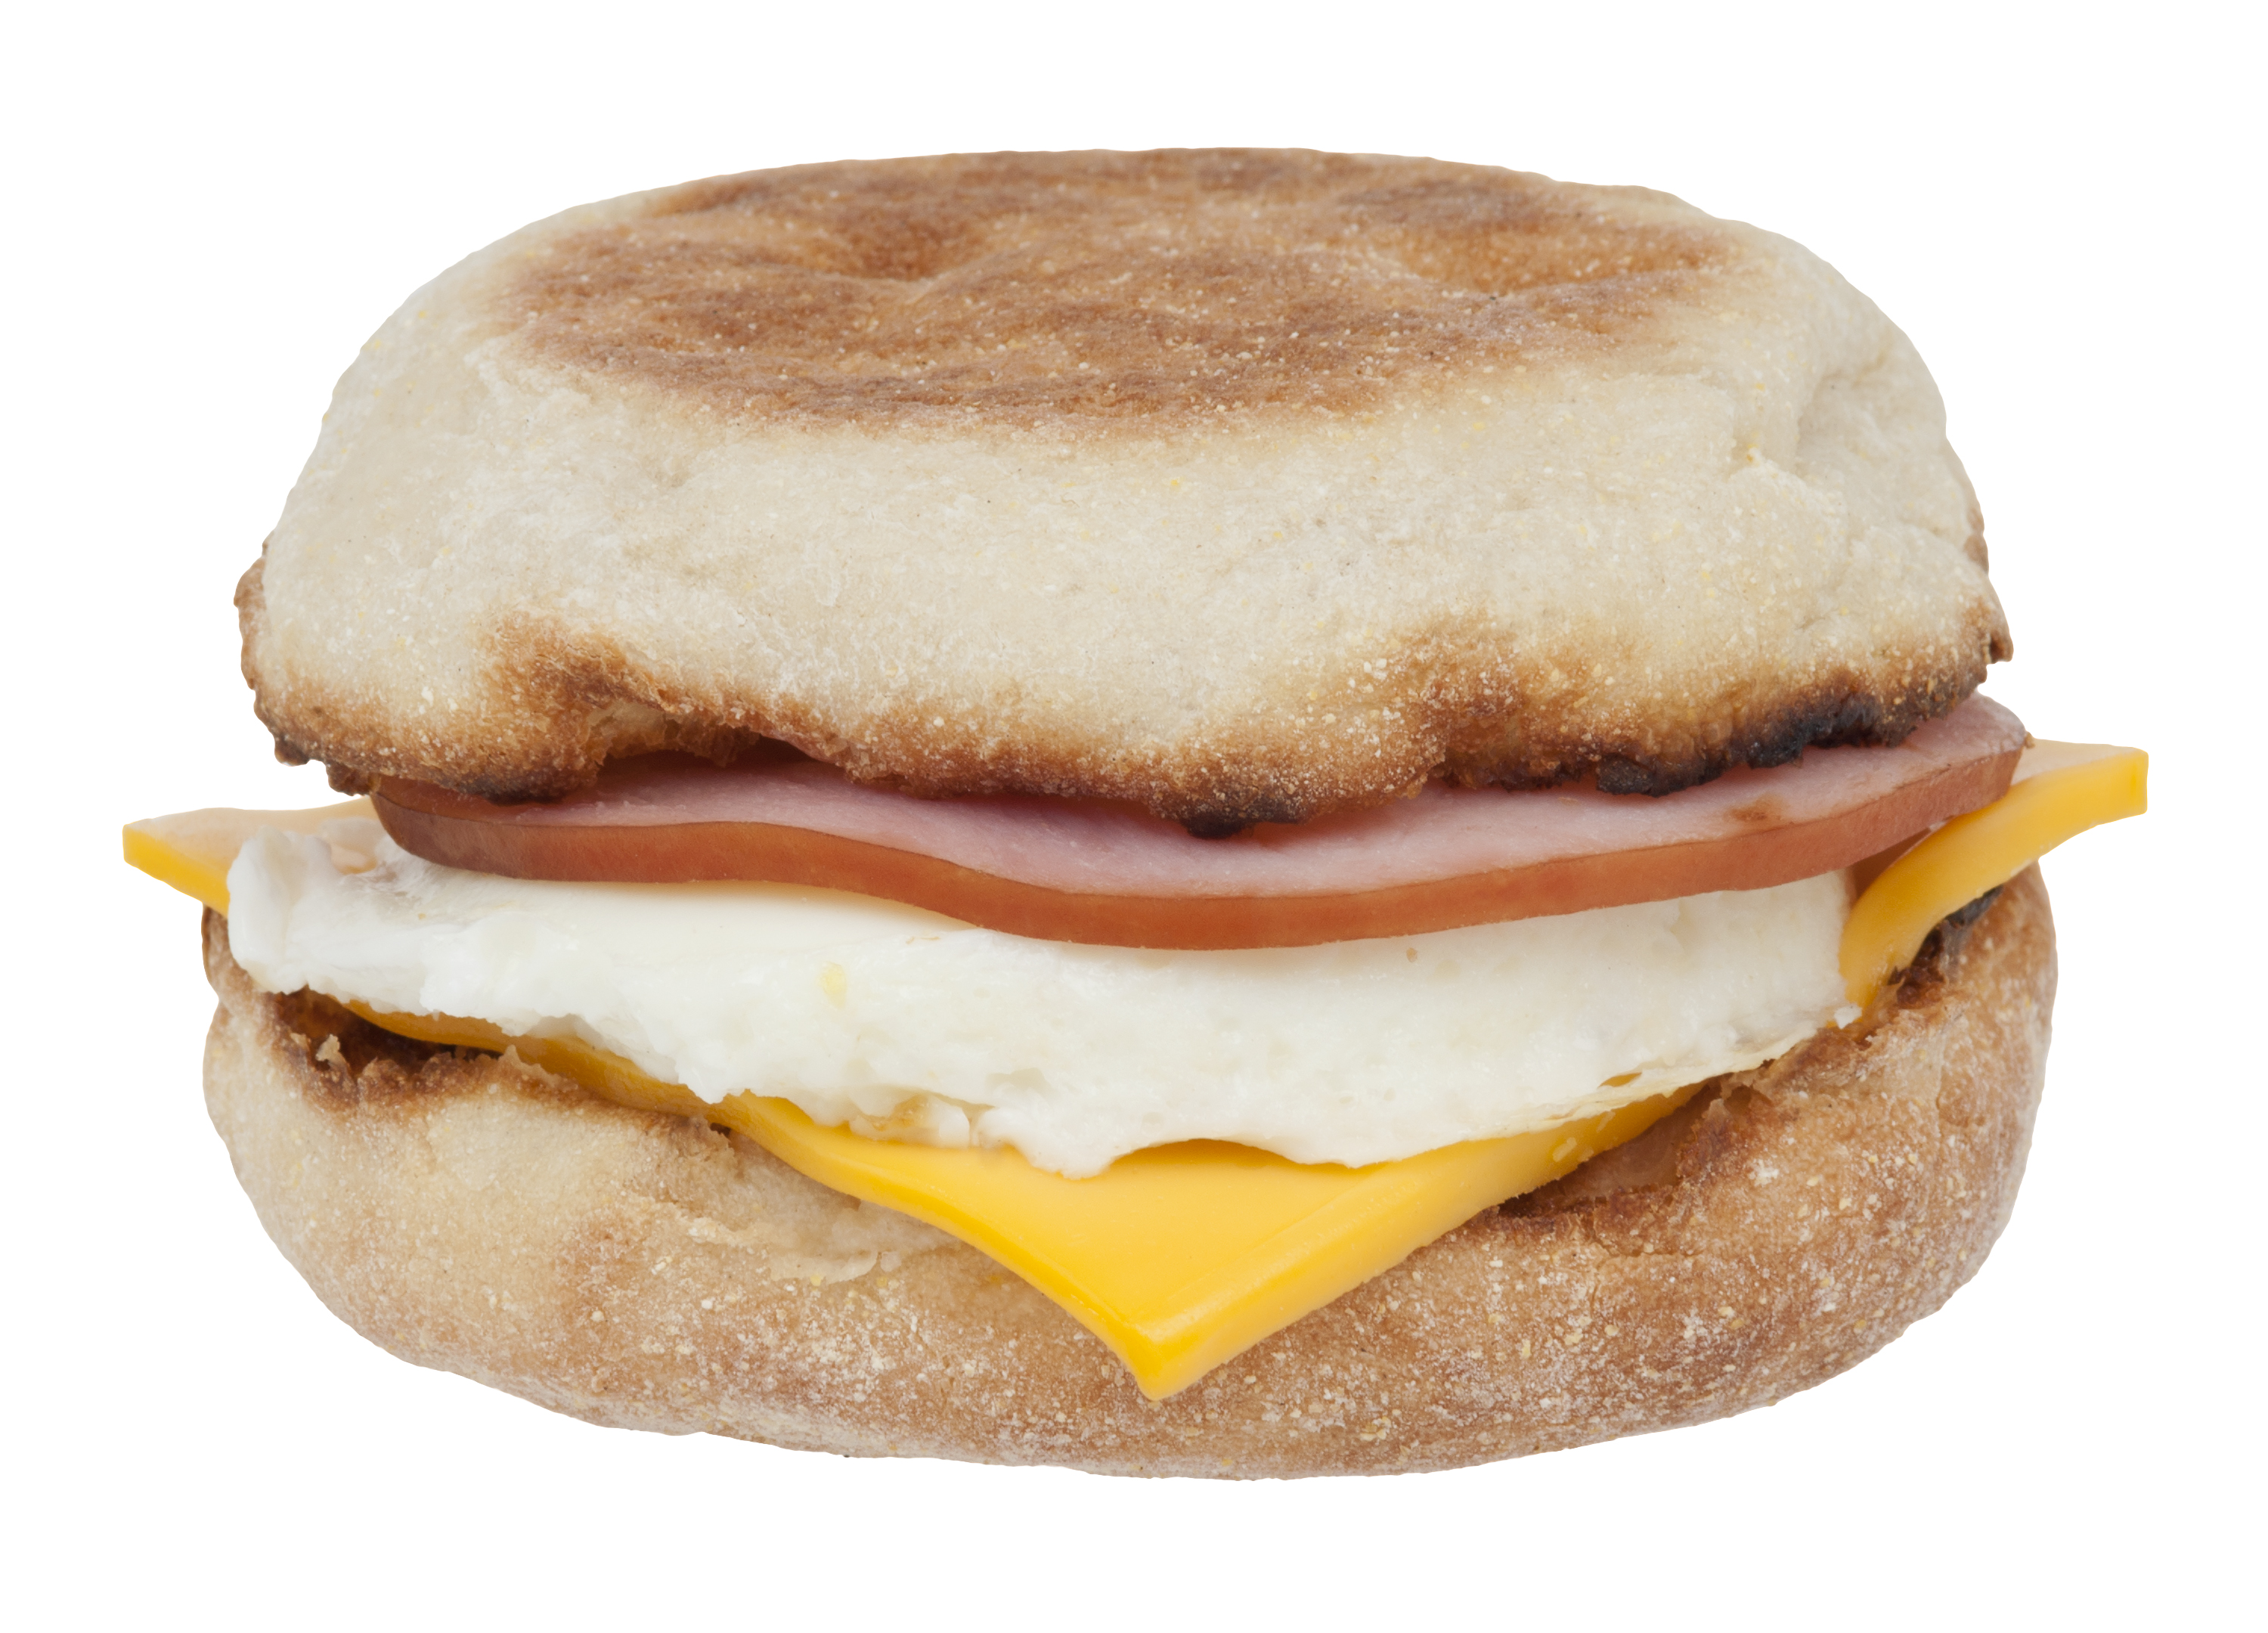 http://upload.wikimedia.org/wikipedia/commons/0/07/McD-Egg-McMuffin.jpg